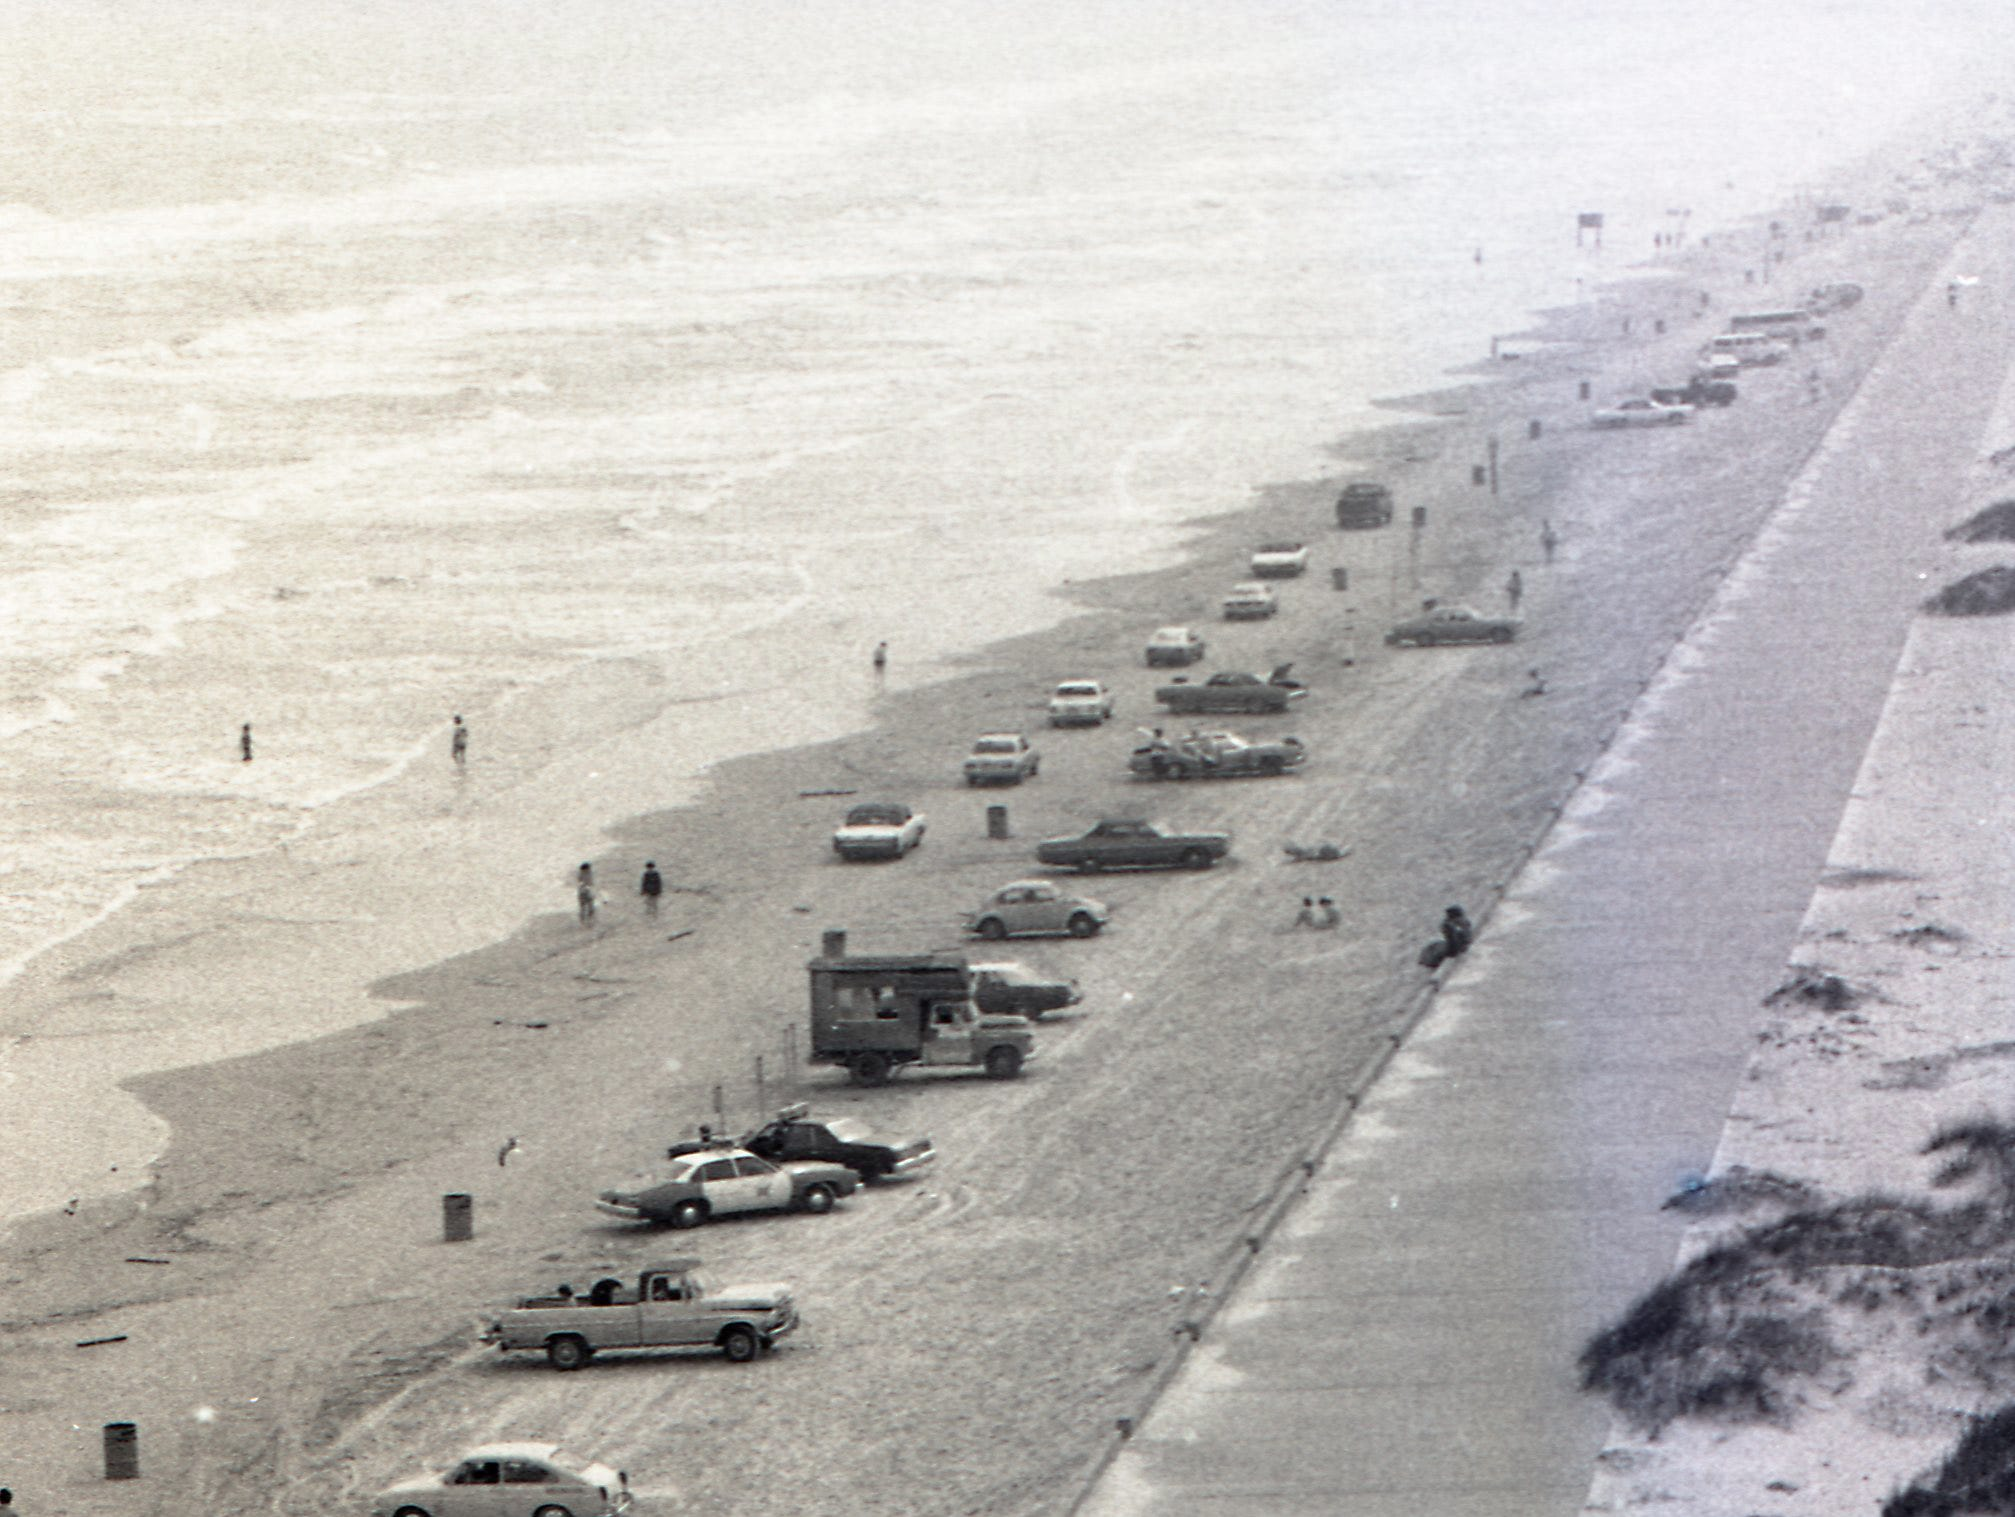 Crowds weren't heavy yet when this photo was taken on Padre Island during spring break on March 17, 1979.